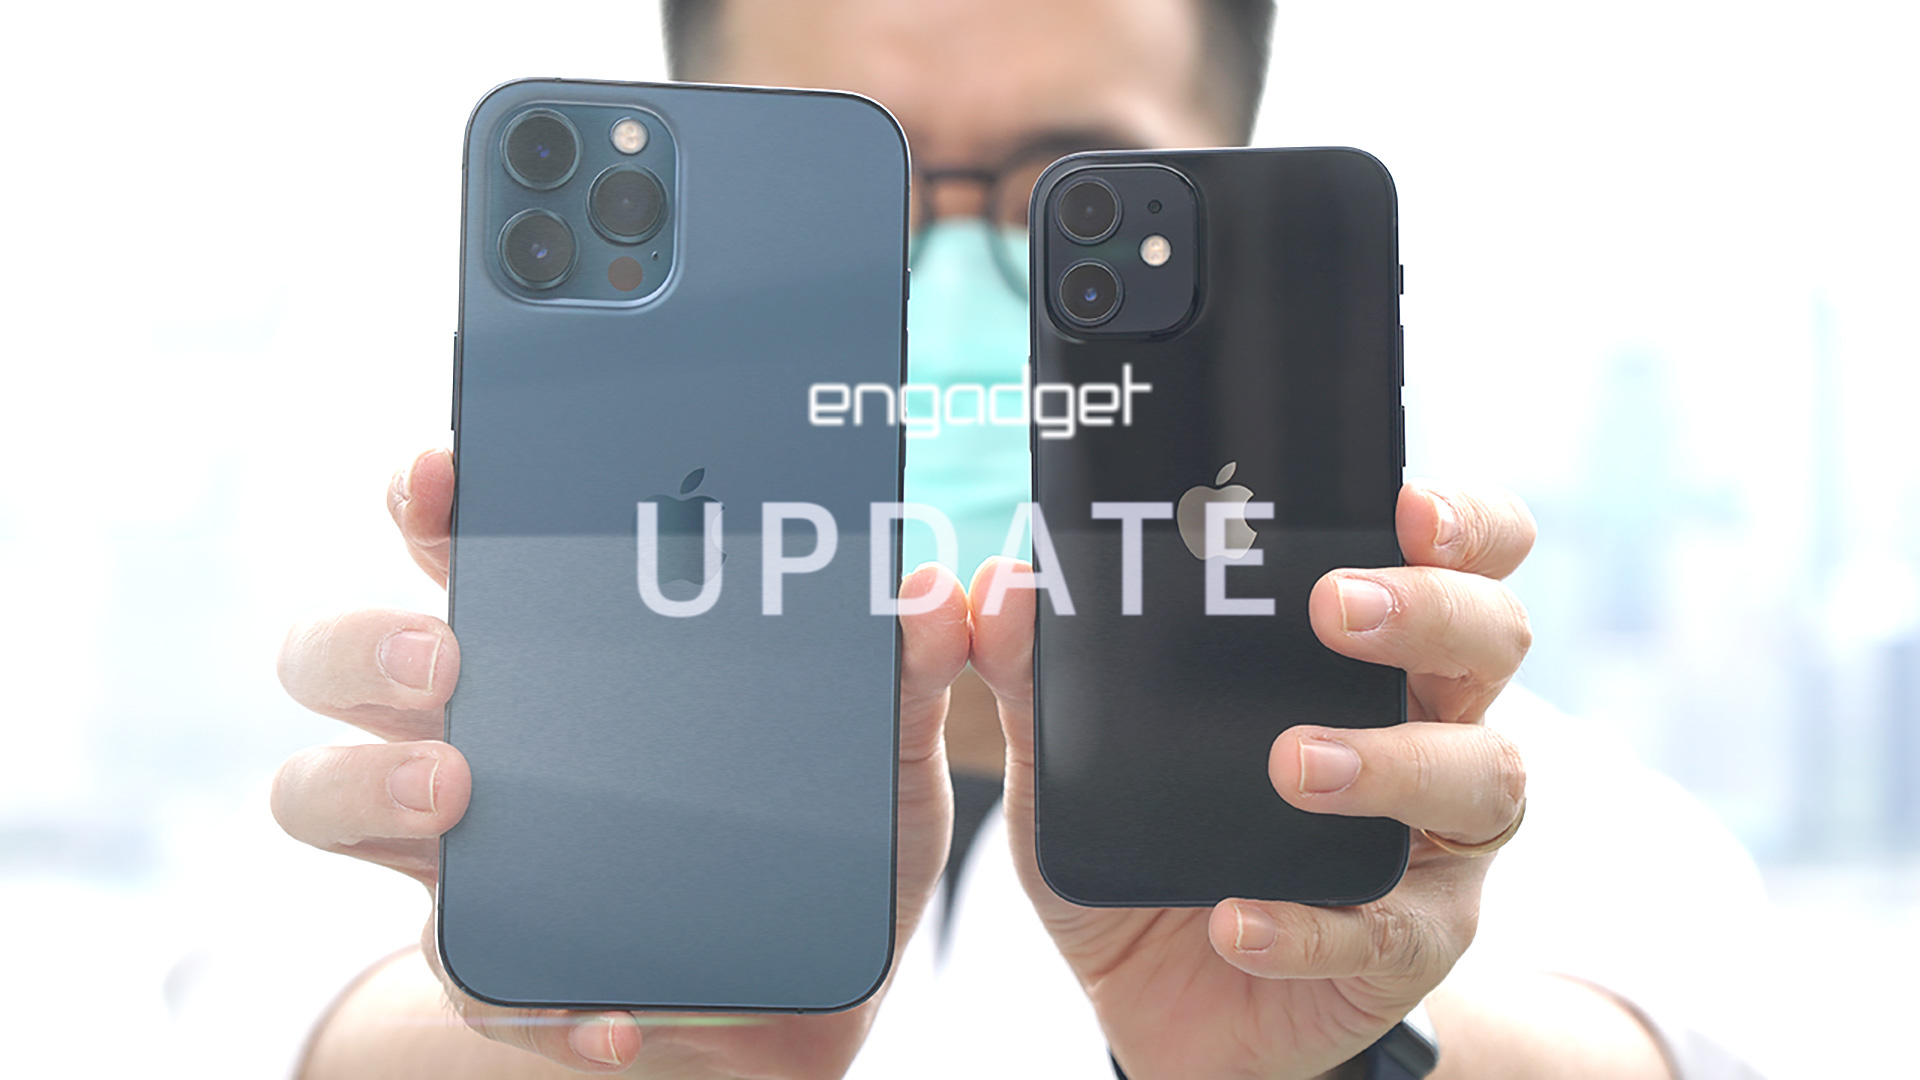 Engadget update ep79